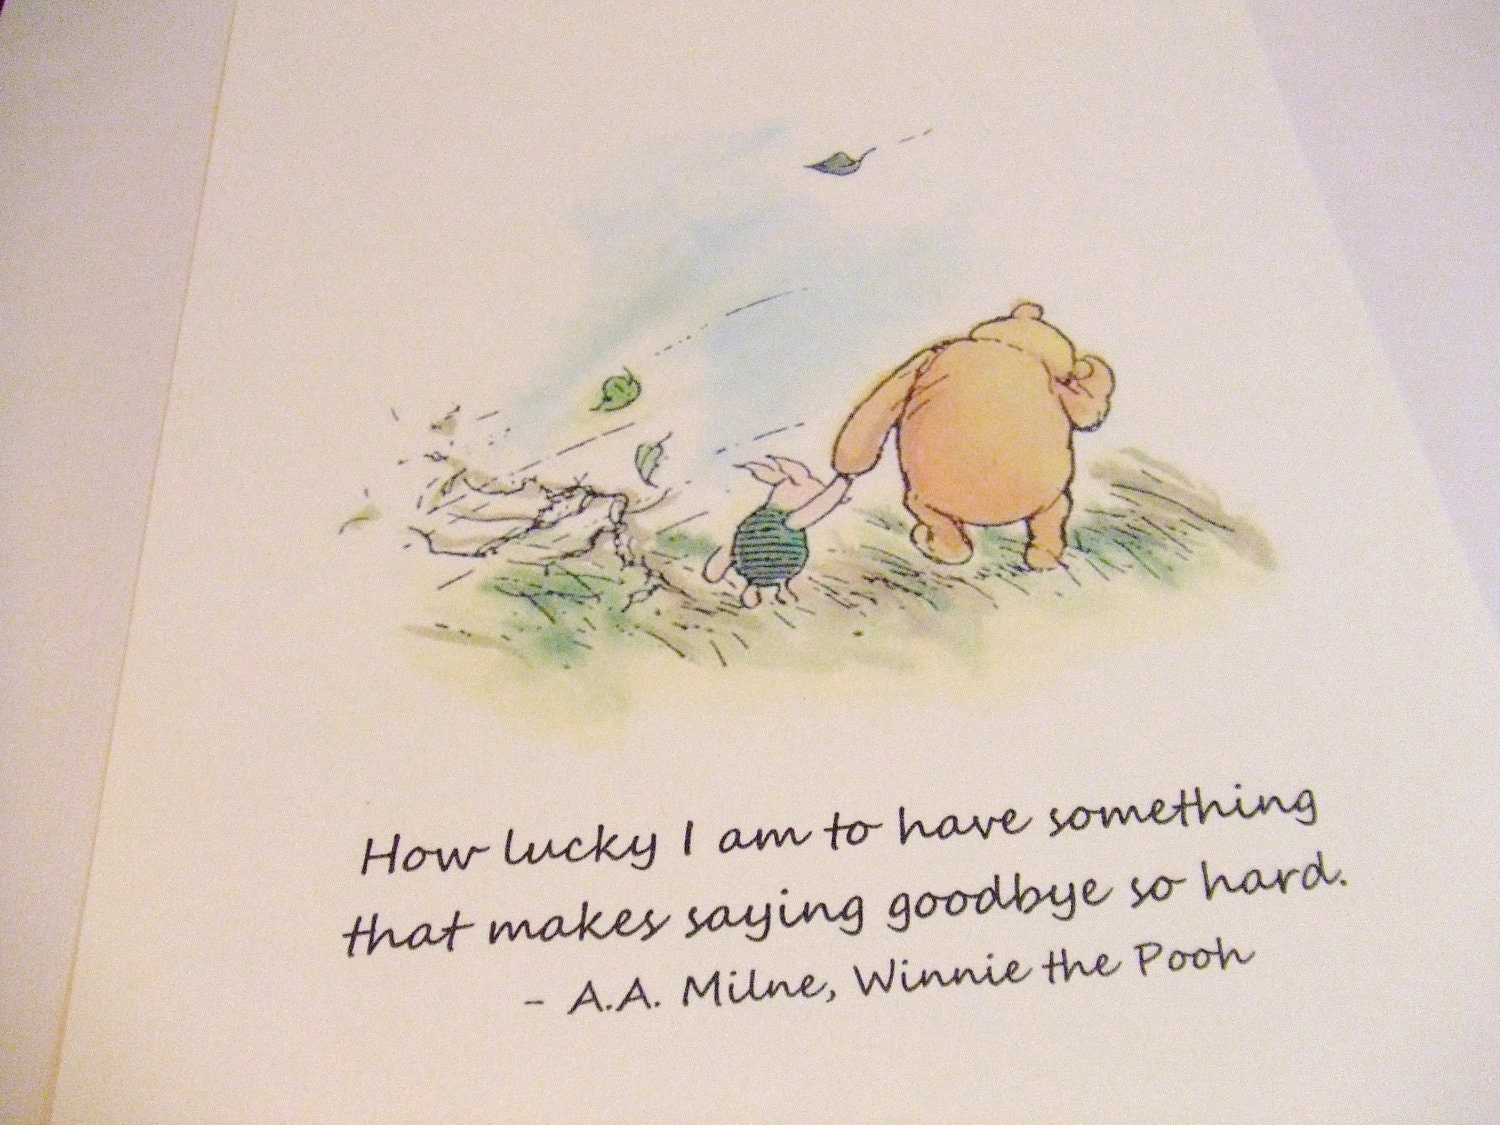 How To Have Good Luck Glamorous Of Winnie the Pooh How Lucky I AM to Have Picture